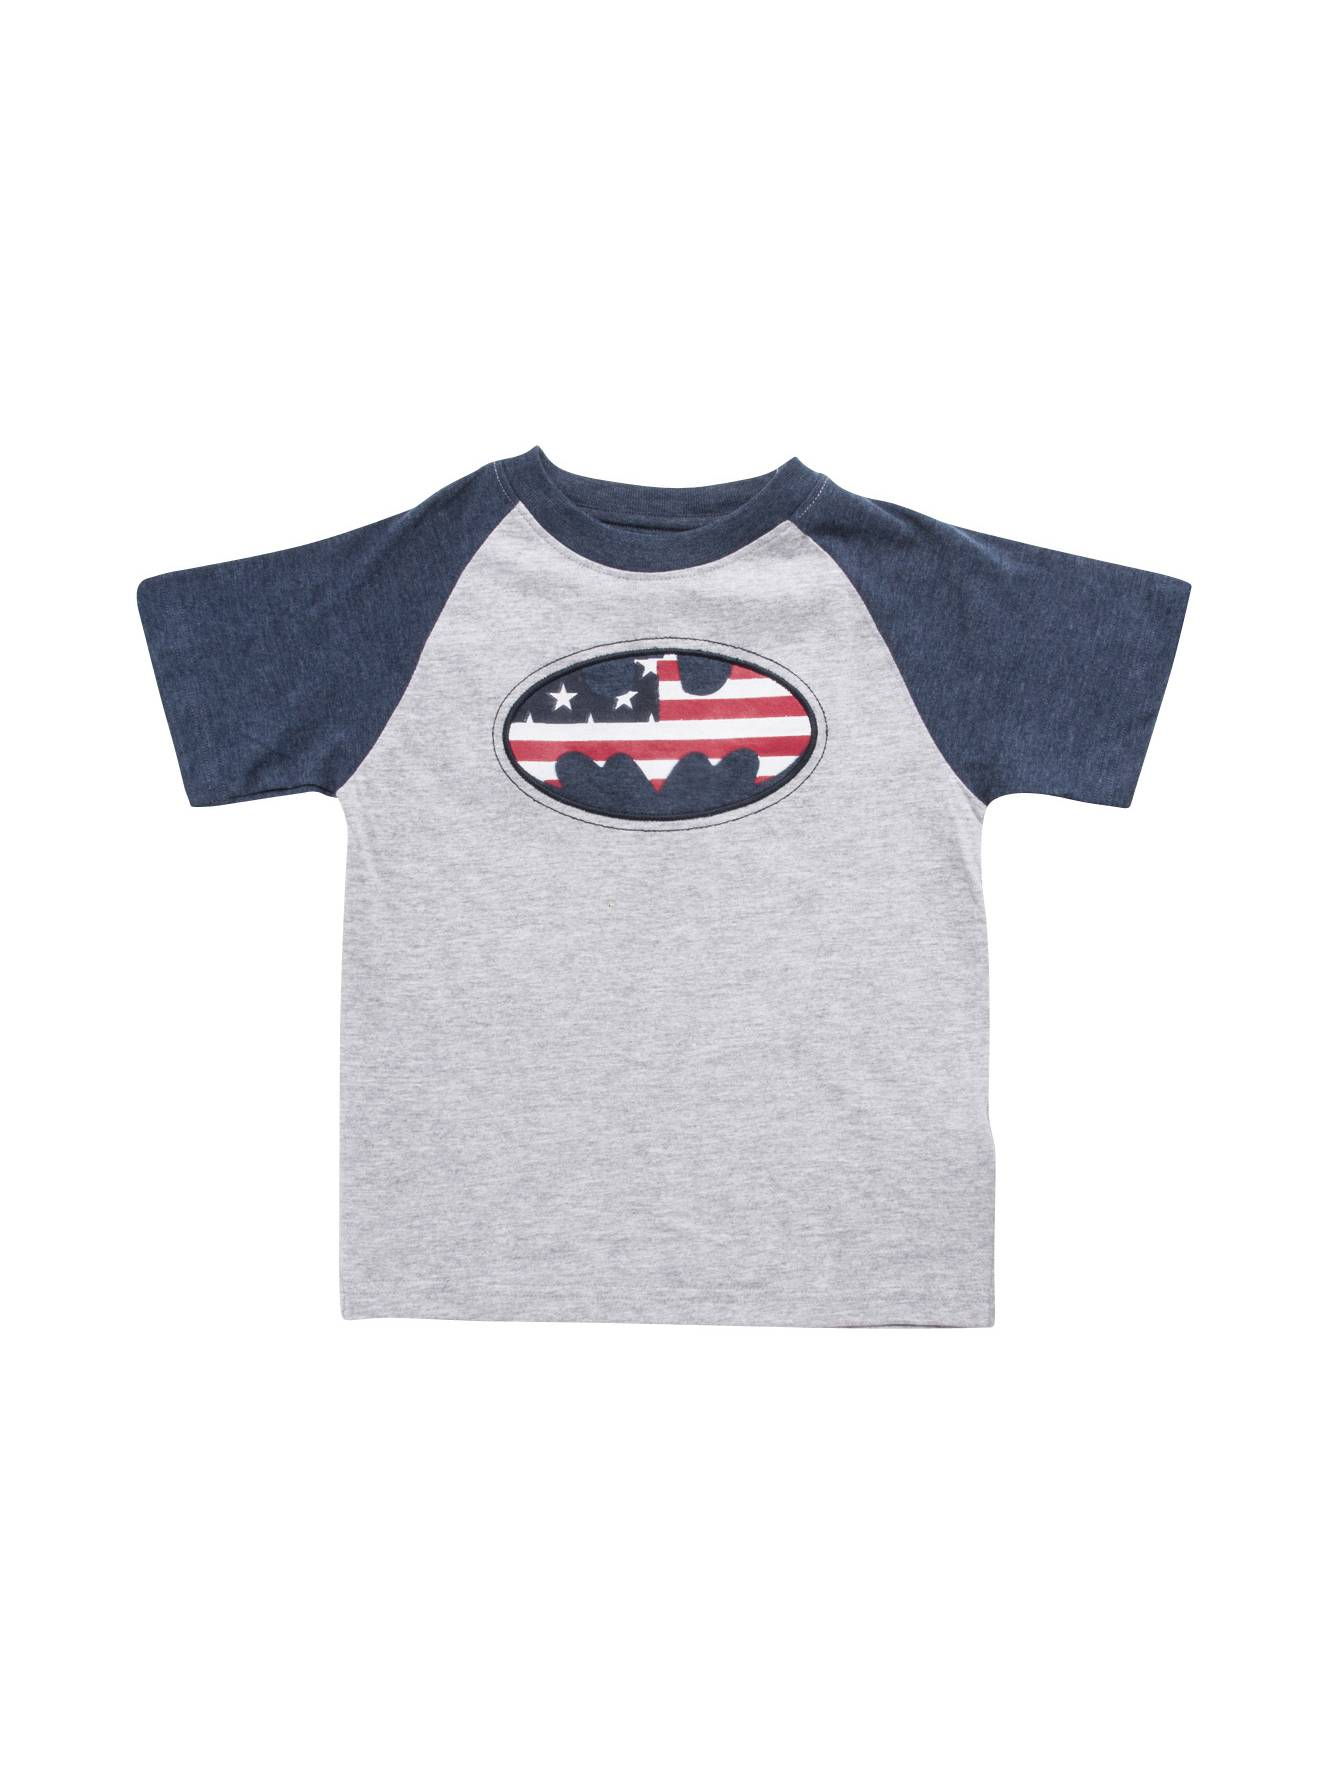 USA Themed Batman Toddlers T-Shirt